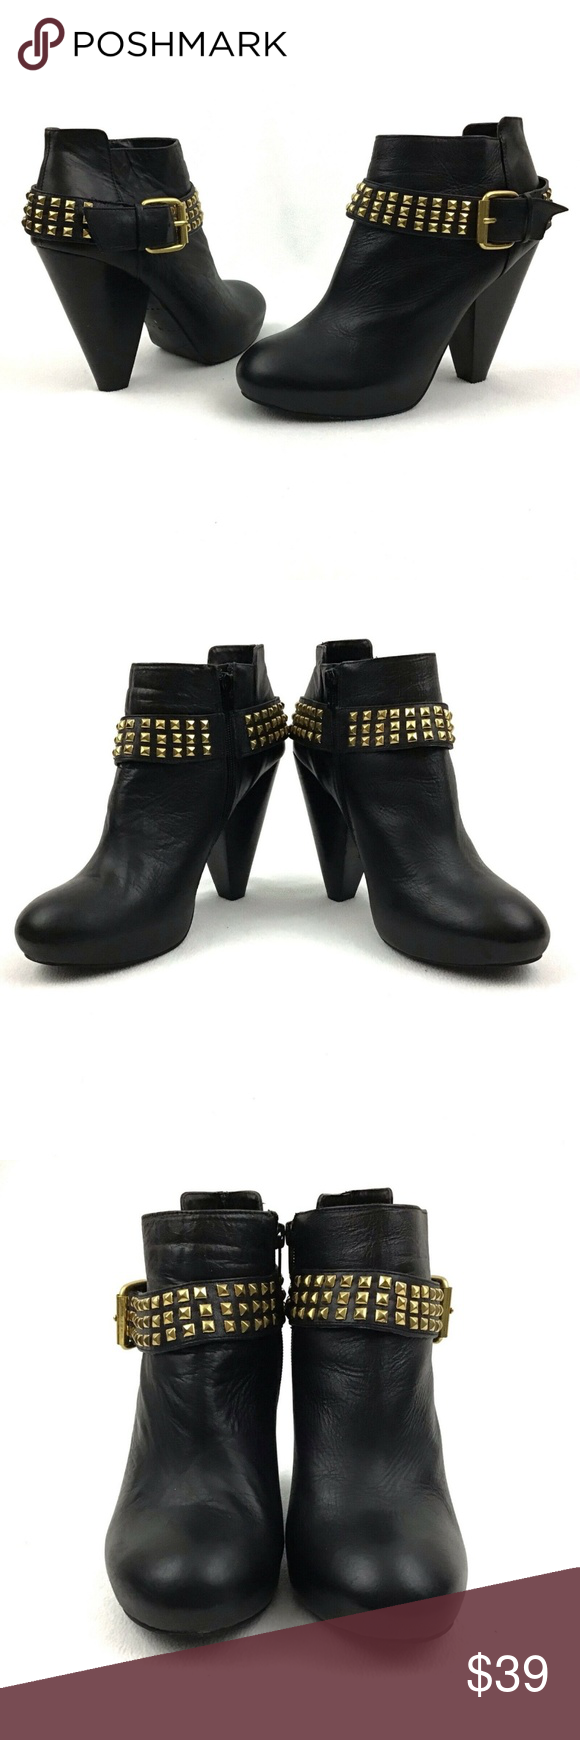 f65cac25c36 Dolce Vita Black Leather Gold Studded Booties 10 DV Dolce Vita Black ...